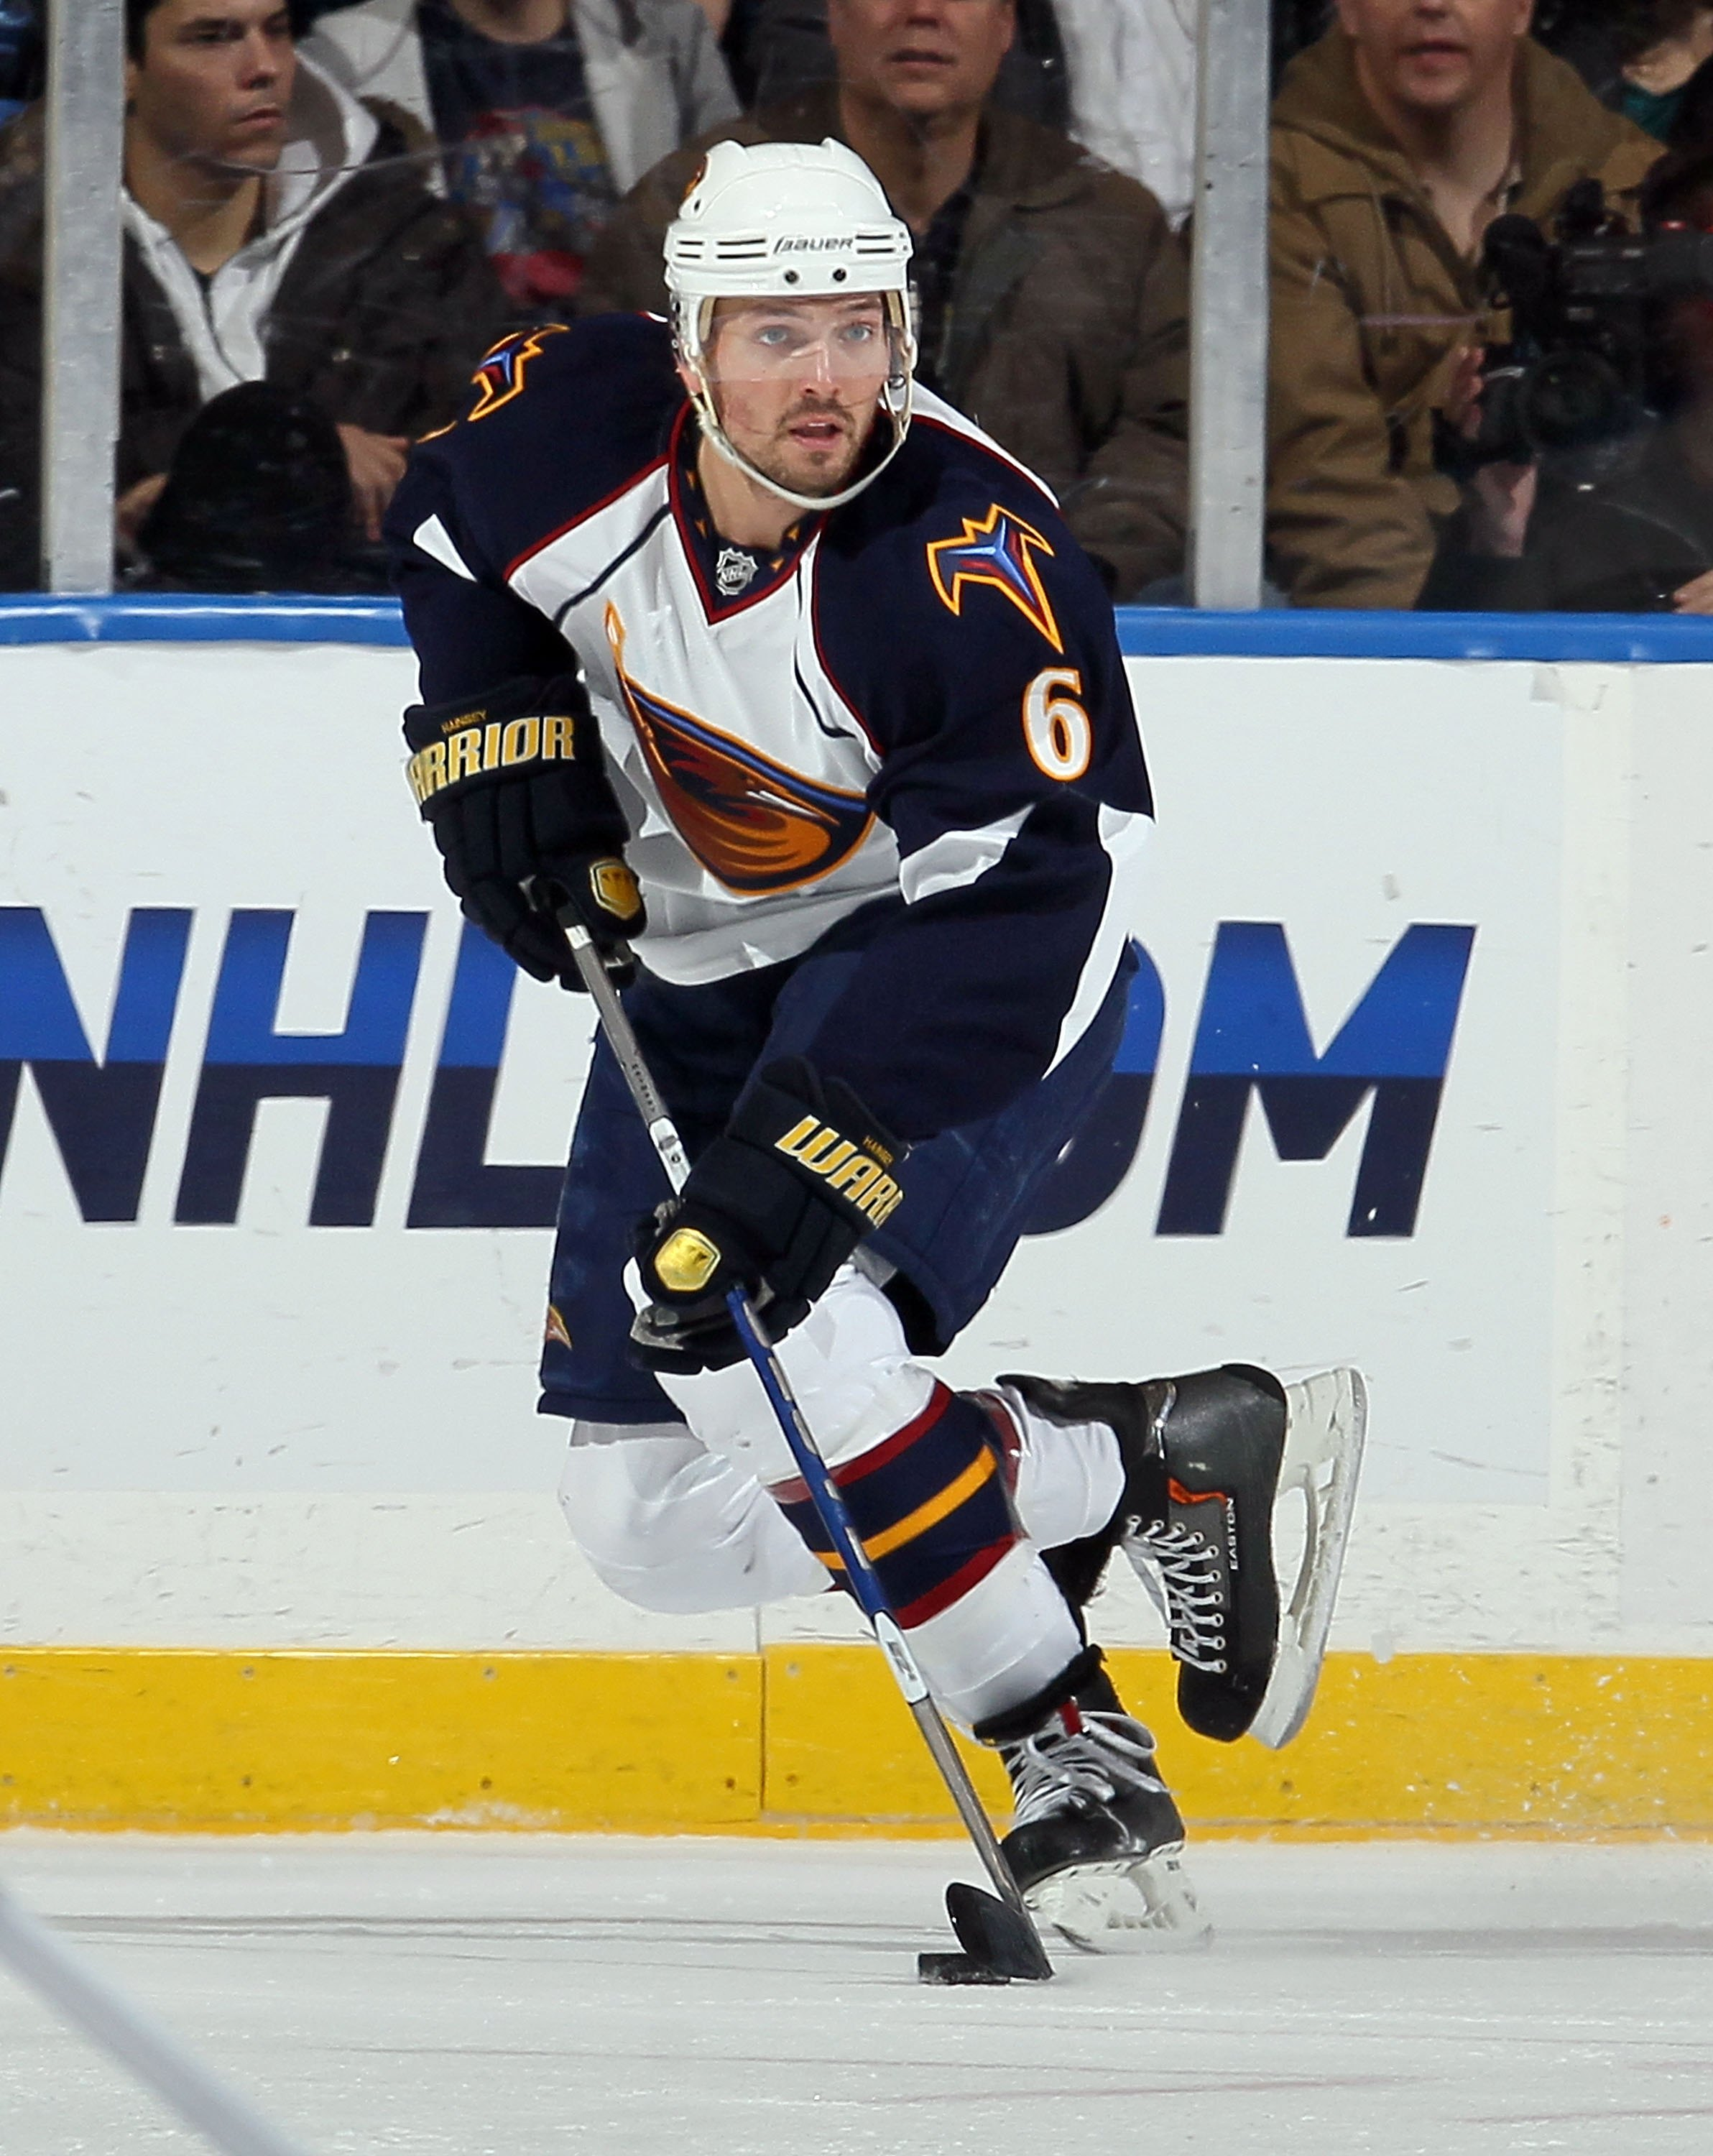 UNIONDALE, NY - DECEMBER 11:  Ron Hainsey #6 of the Atlanta Thrashers skates against the New York Islanders on December 11, 2010 at Nassau Coliseum in Uniondale, New York. The Thrashers defeated the Isles 5-4.  (Photo by Jim McIsaac/Getty Images)